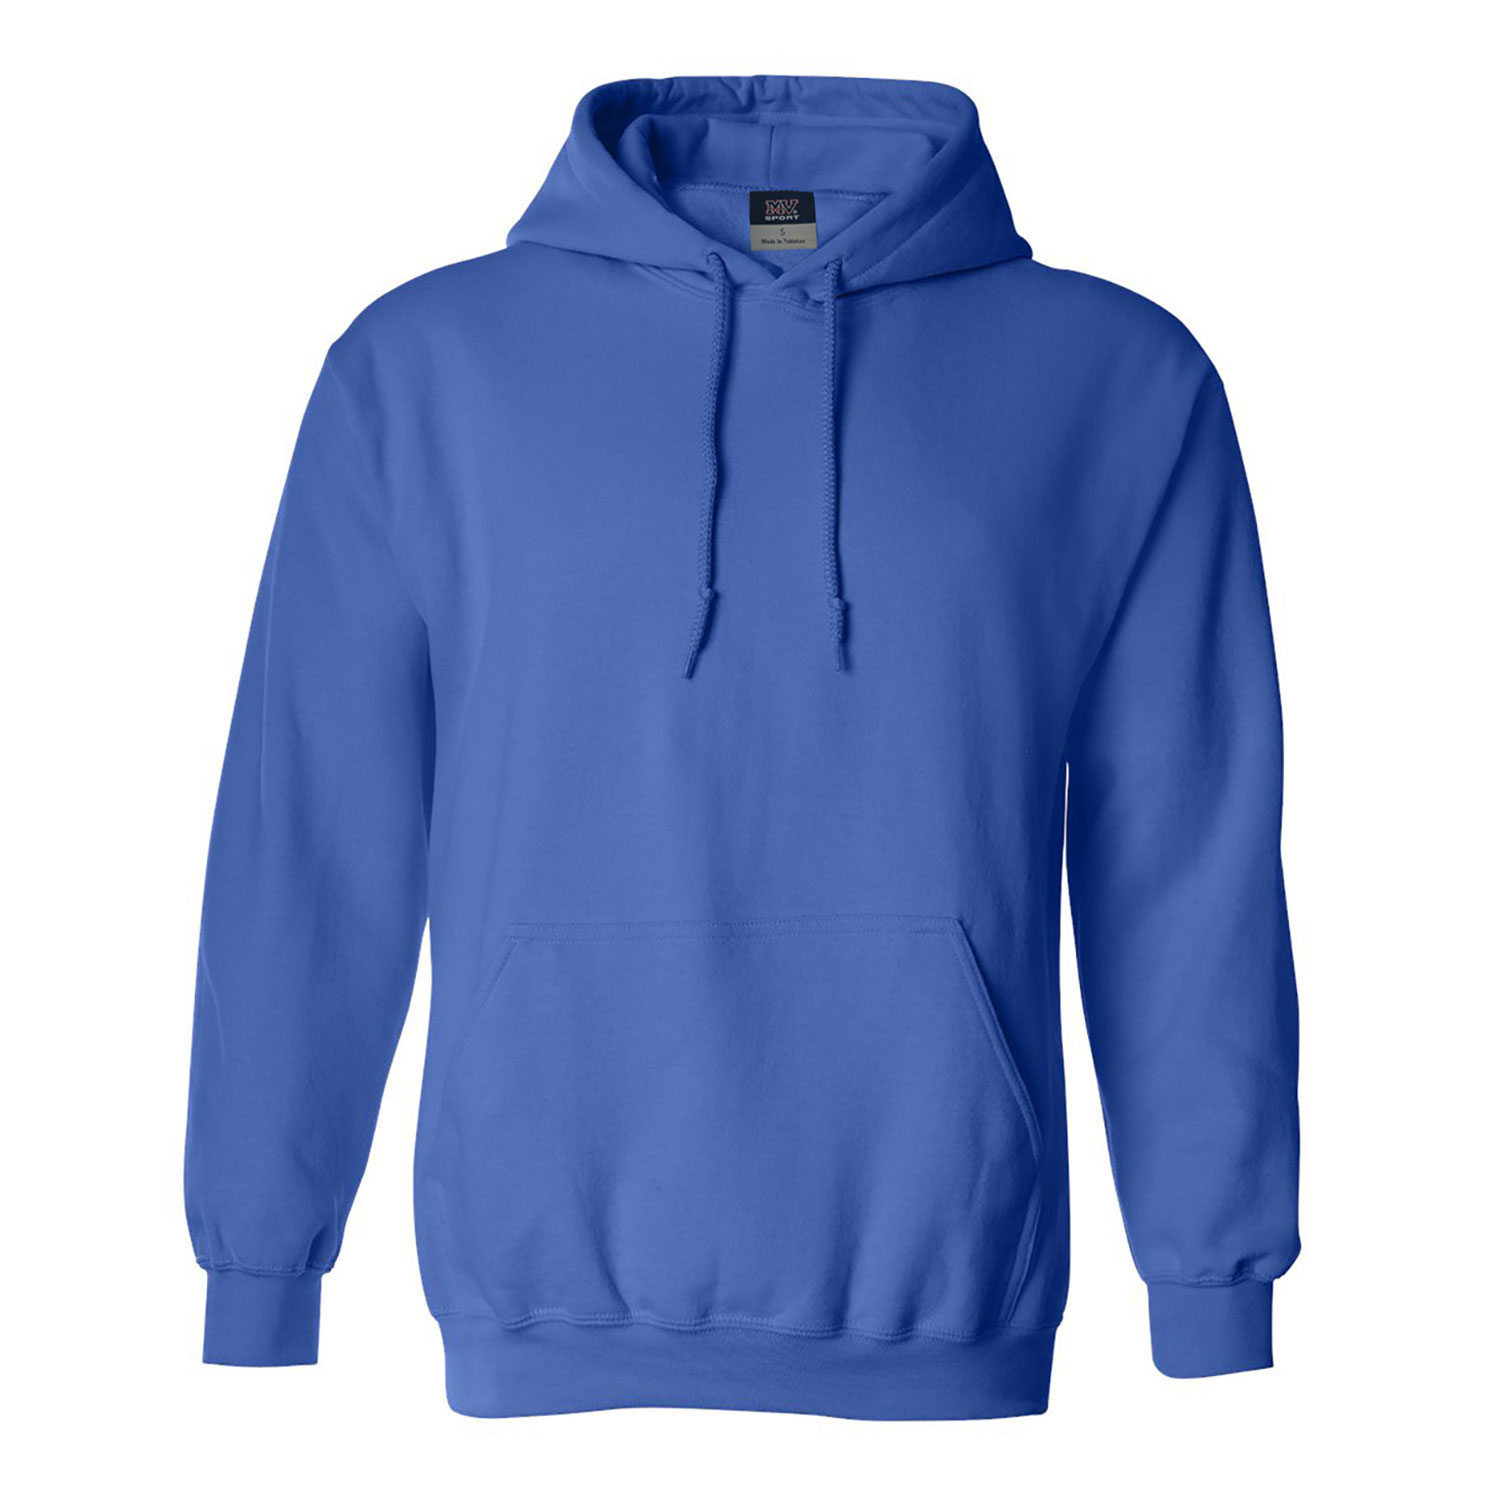 Adult Comfort Fleece Hooded Sweatshirt